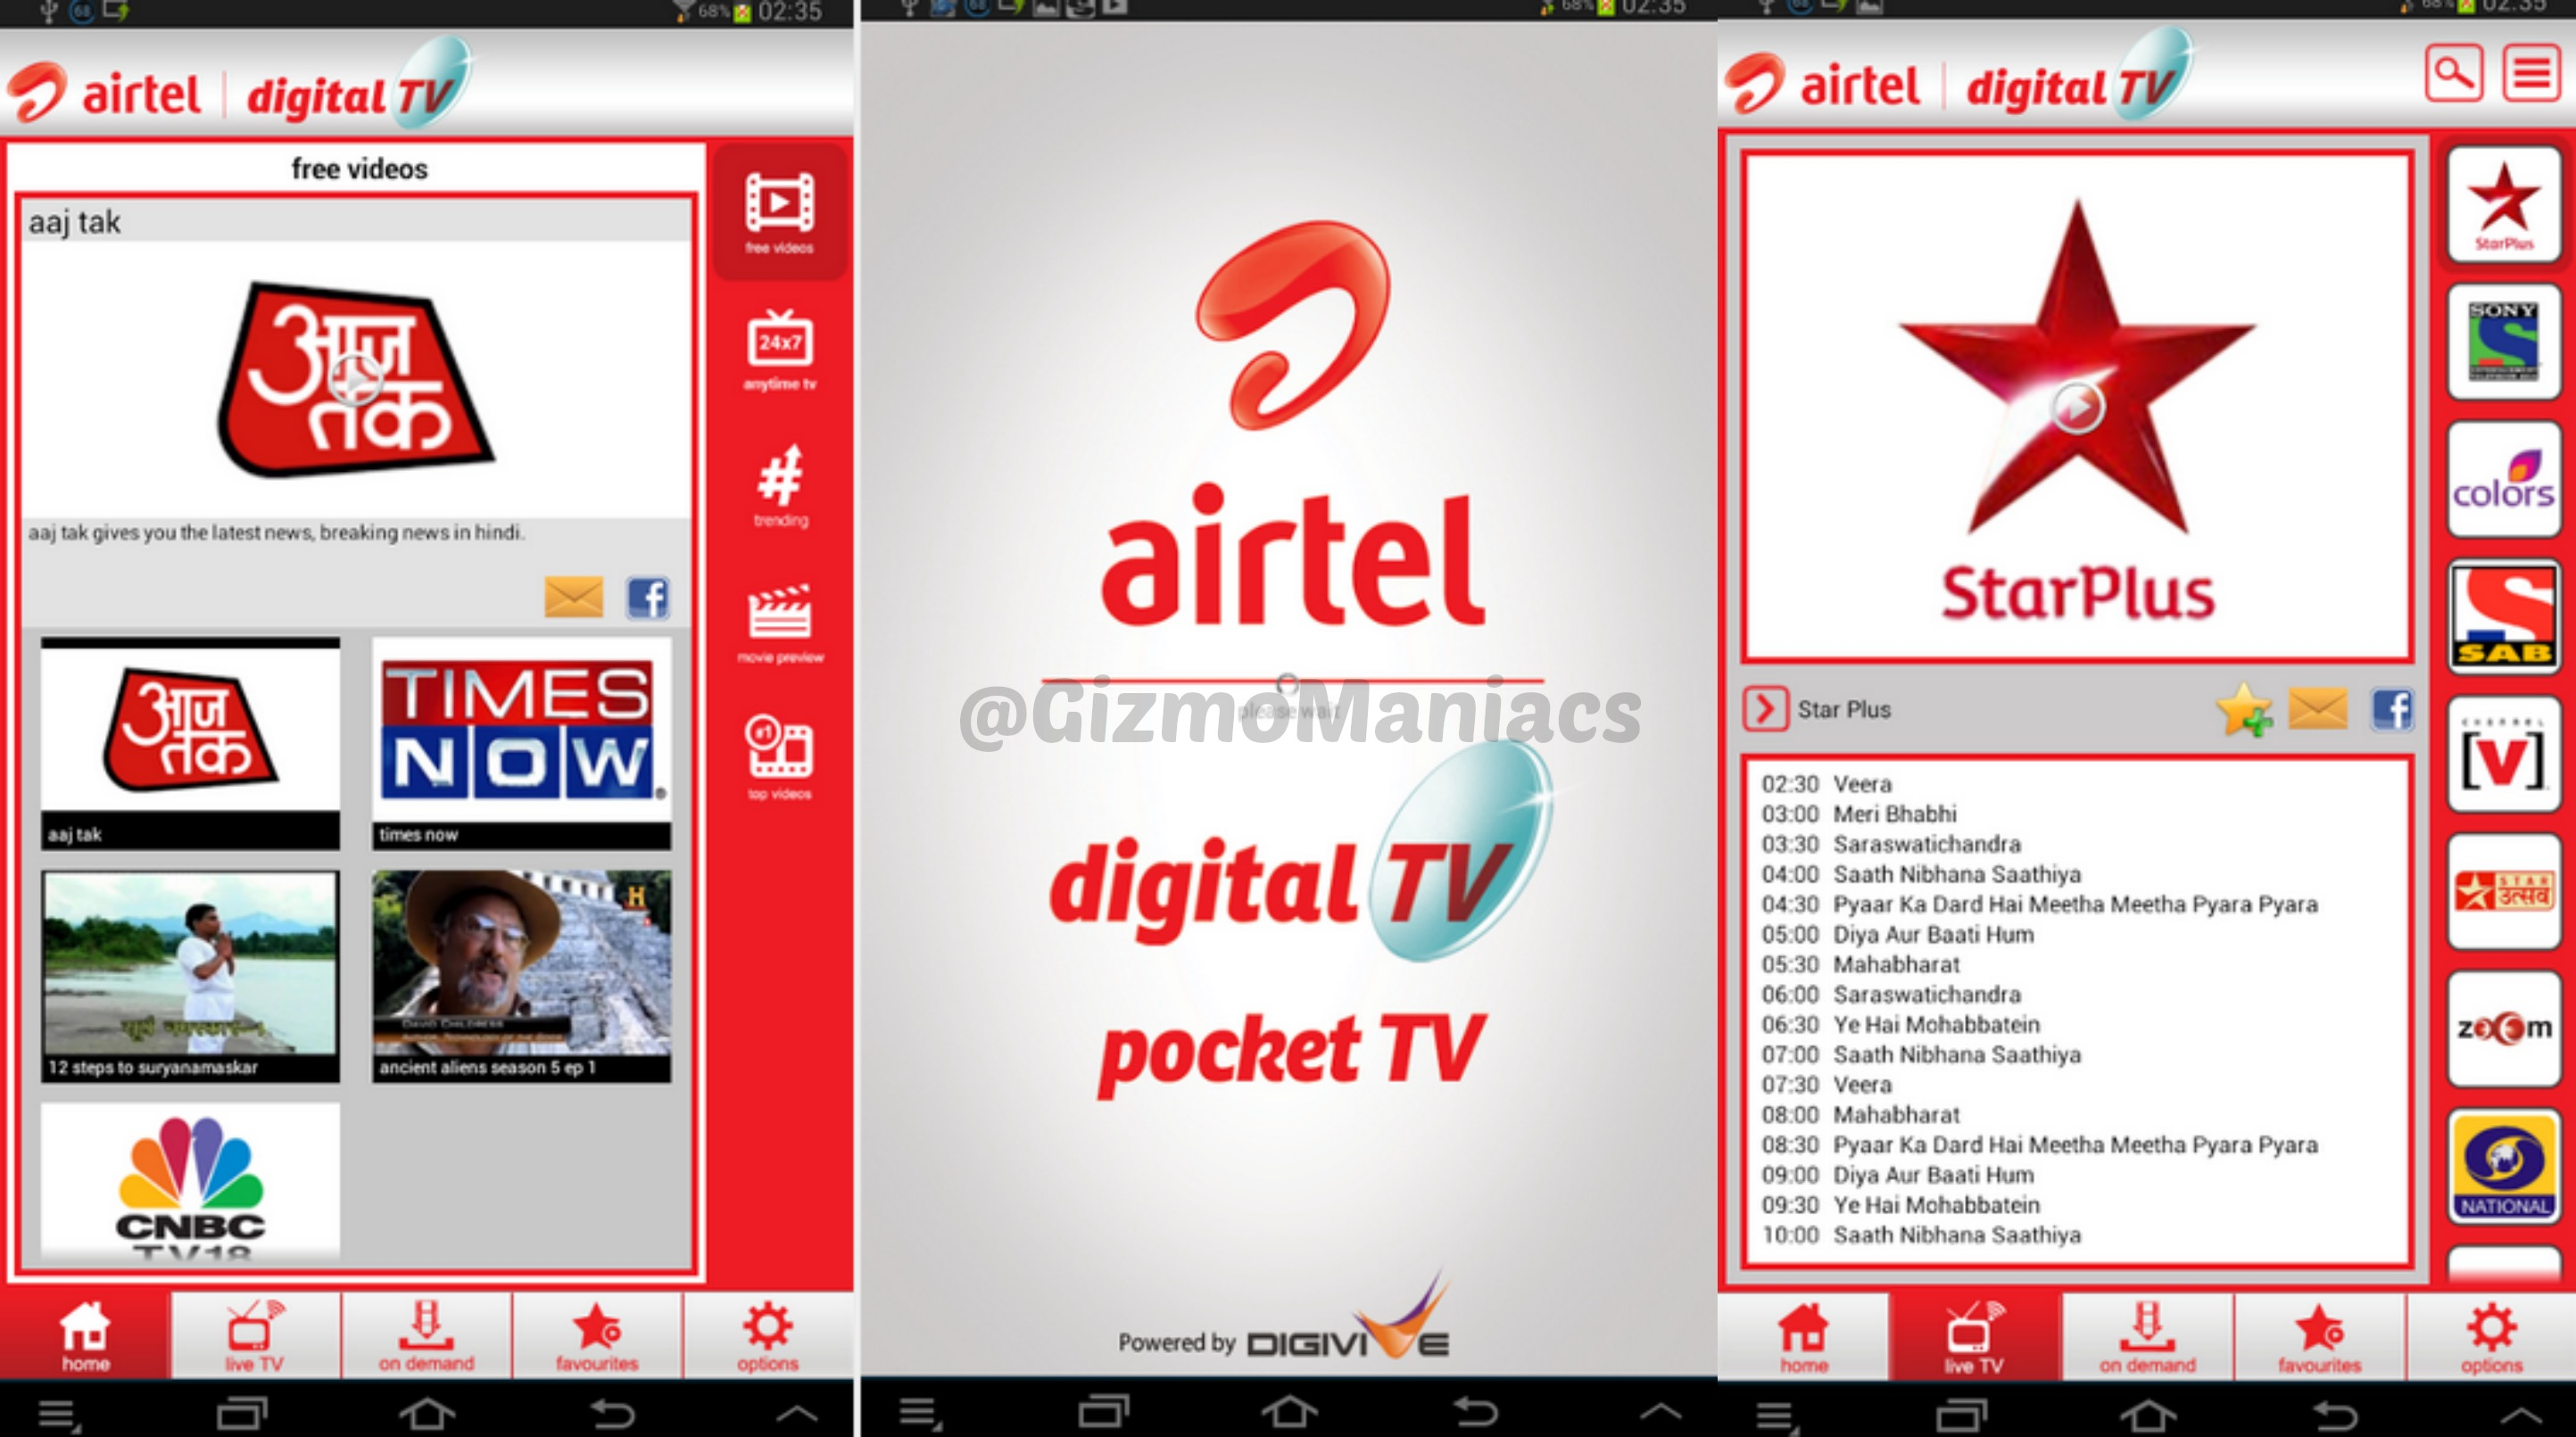 airtel India - YouTube